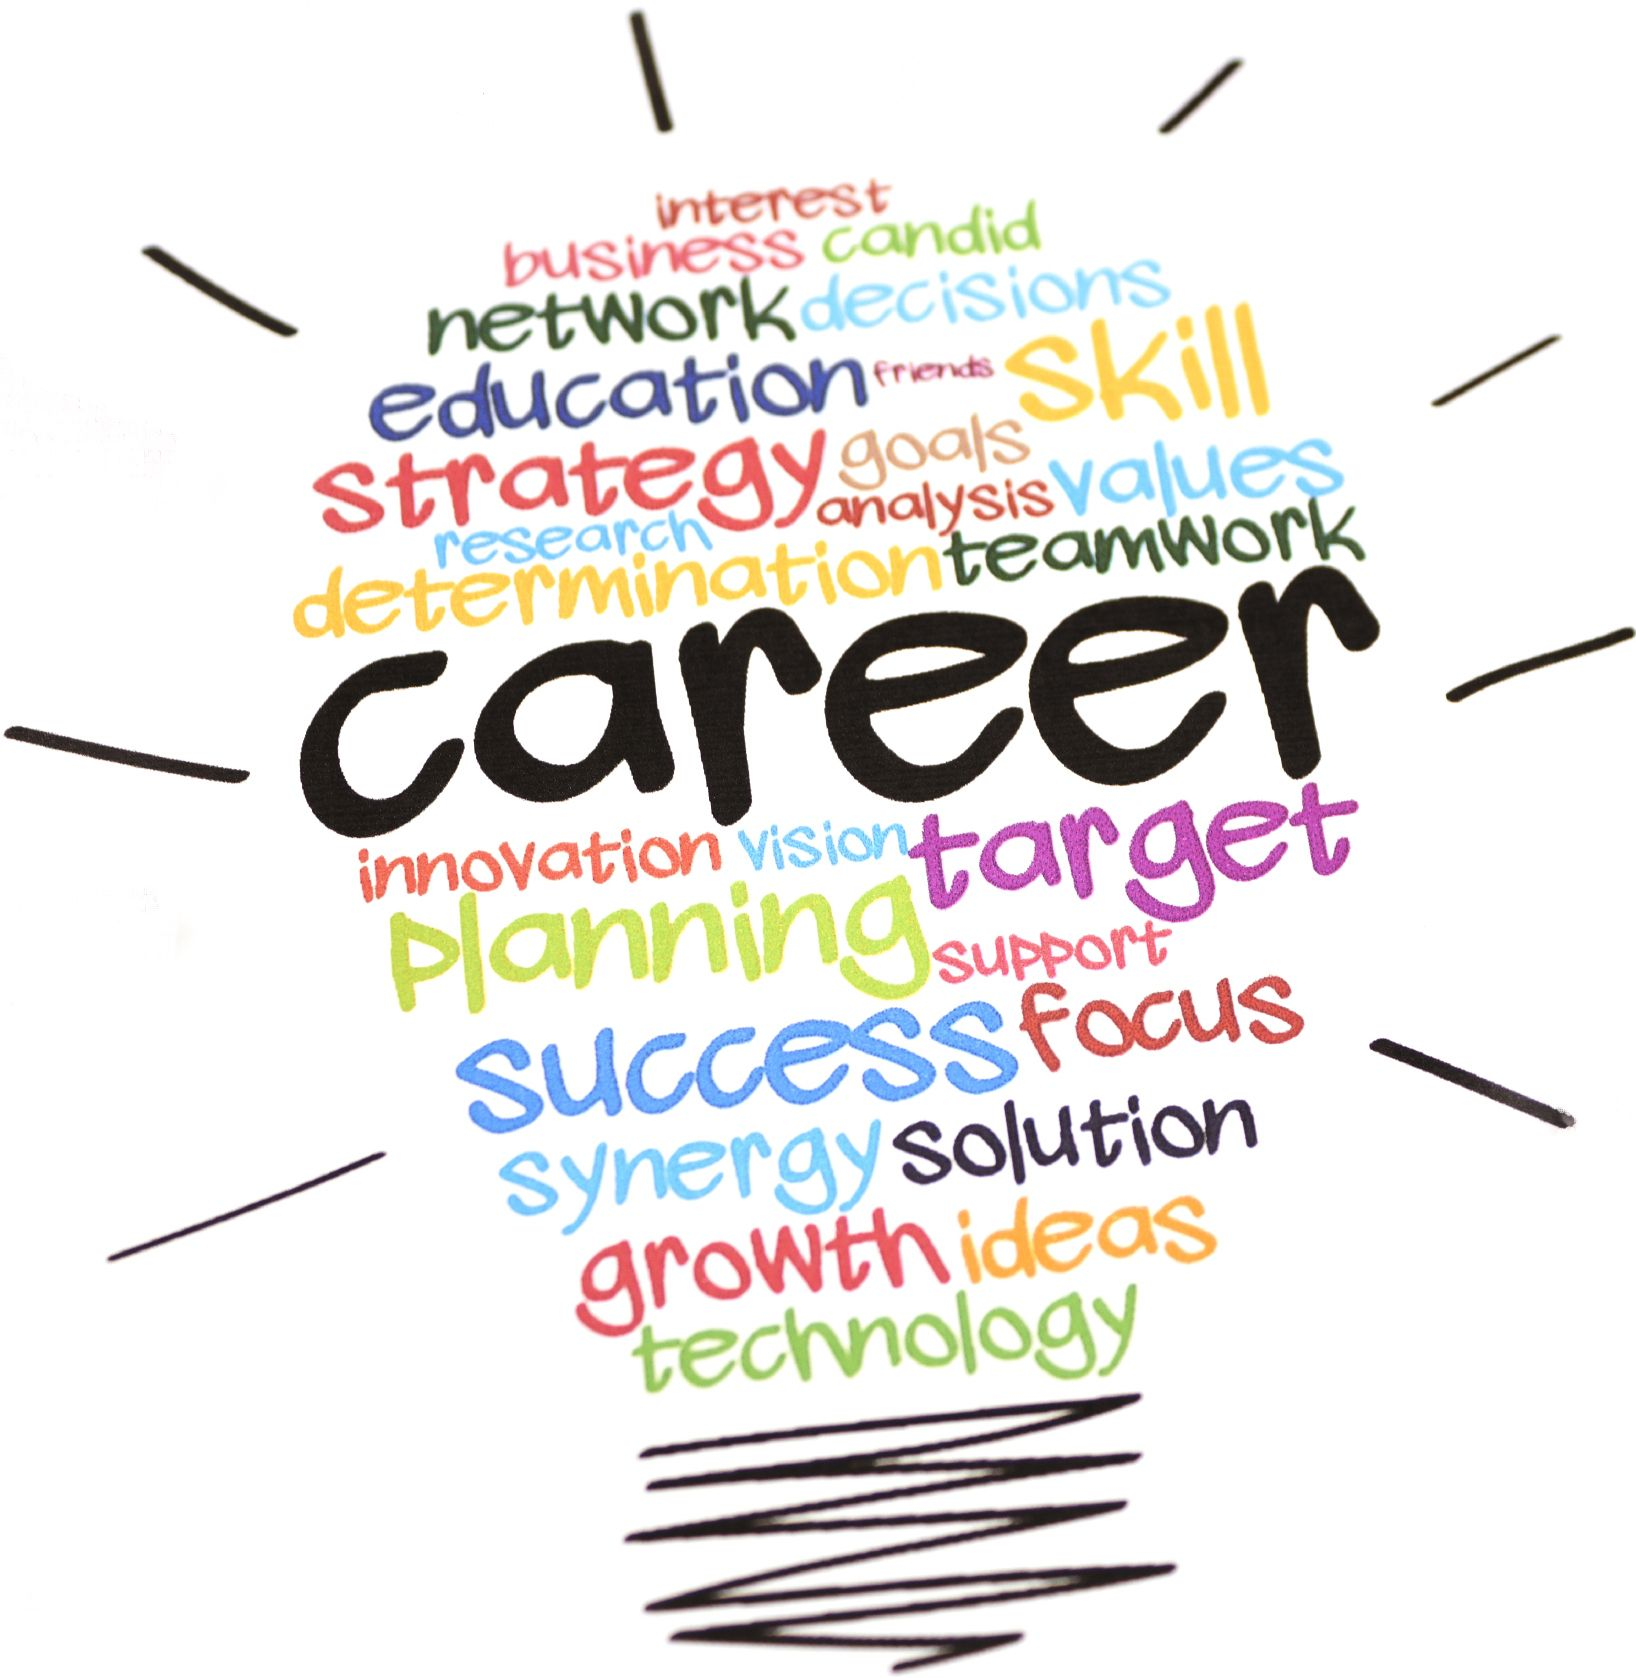 career progression Looking for tips that will help you turn your job into a career these 5 tips will  help you develop your skills and succeed with a planned career.